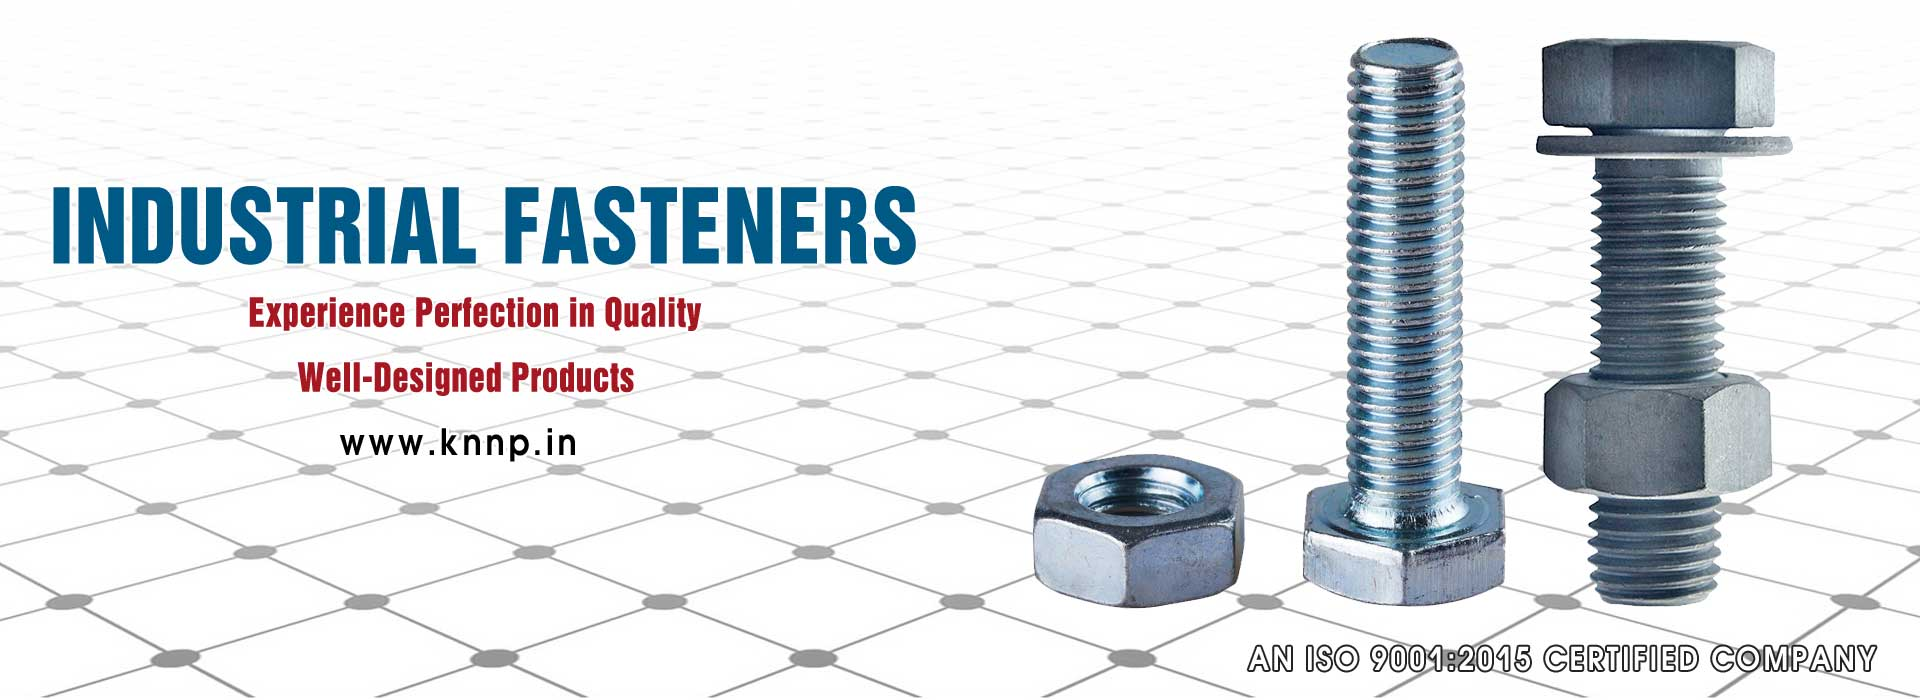 industrial fasteners manufacturers suppliers in india punjab ludhiana